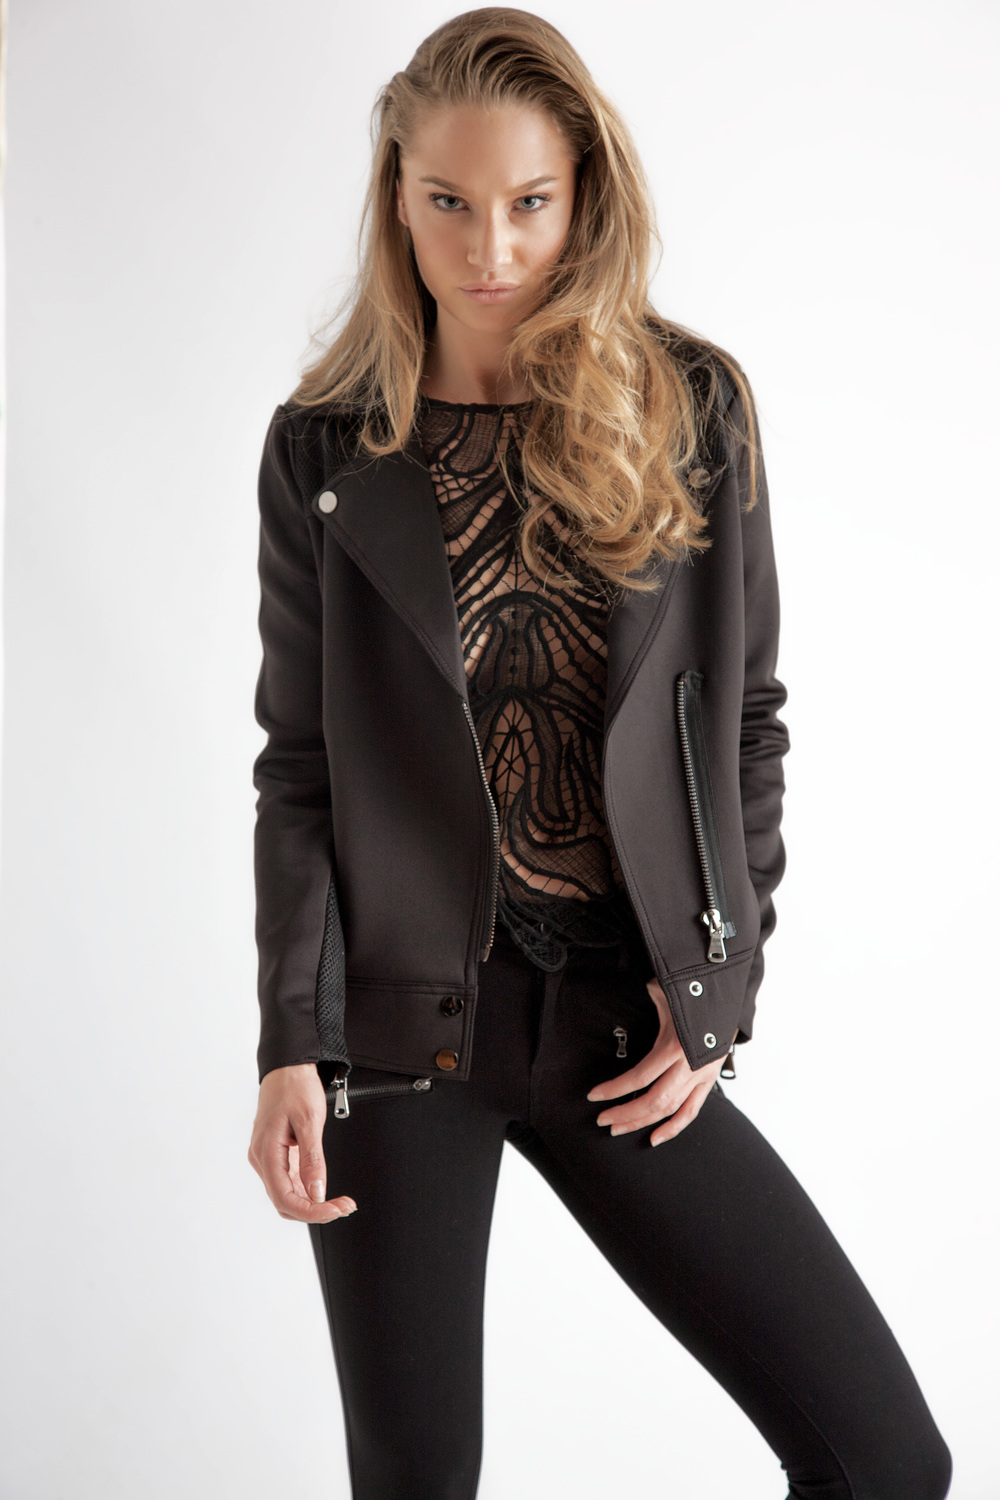 Lace Top by Generation Love $245 | Moto Jacket by John & Jenn $149 | Ponte Pant by Paige $299